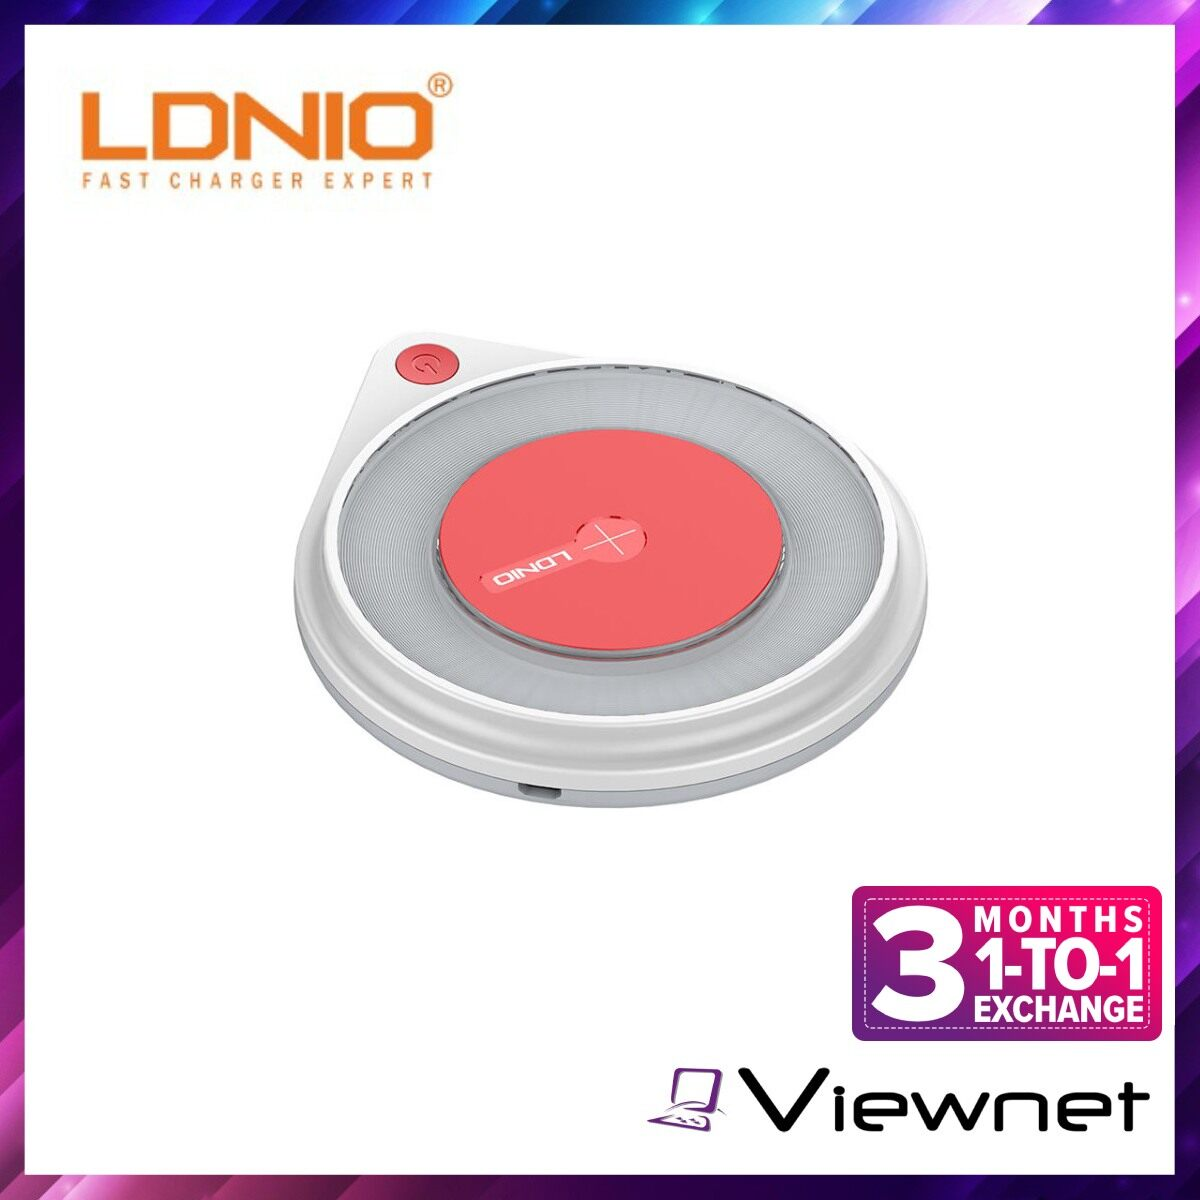 Ldnio 10W Fast Wireless Charger (AW001), Charging Pad Built-in Bedside Lamp for Mobile Phone, Input: 5V/9V 2A Wireless Output: 5V 1A, 9V 1.1A